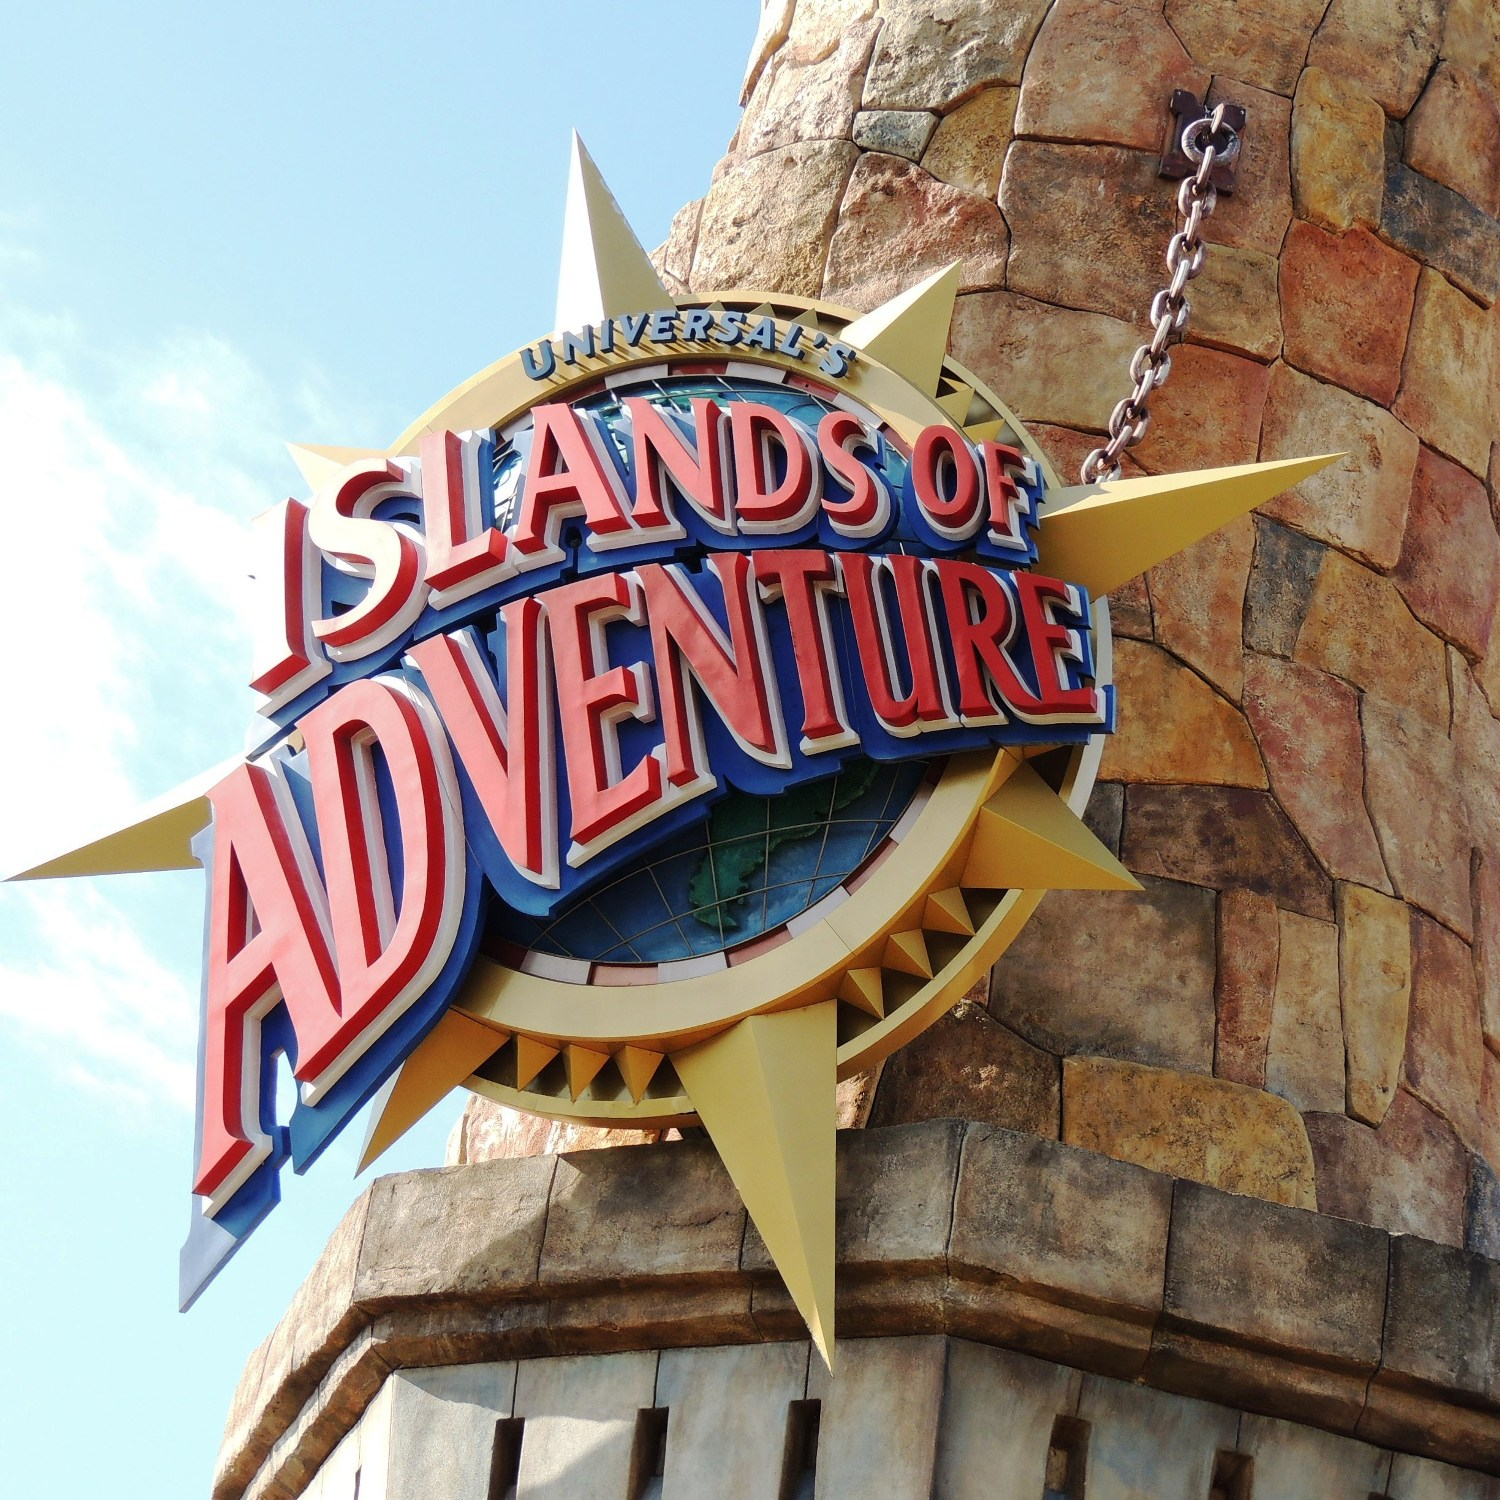 Tips for a great trip to Universal's Islands of Adventure theme park in Orlando Florida.